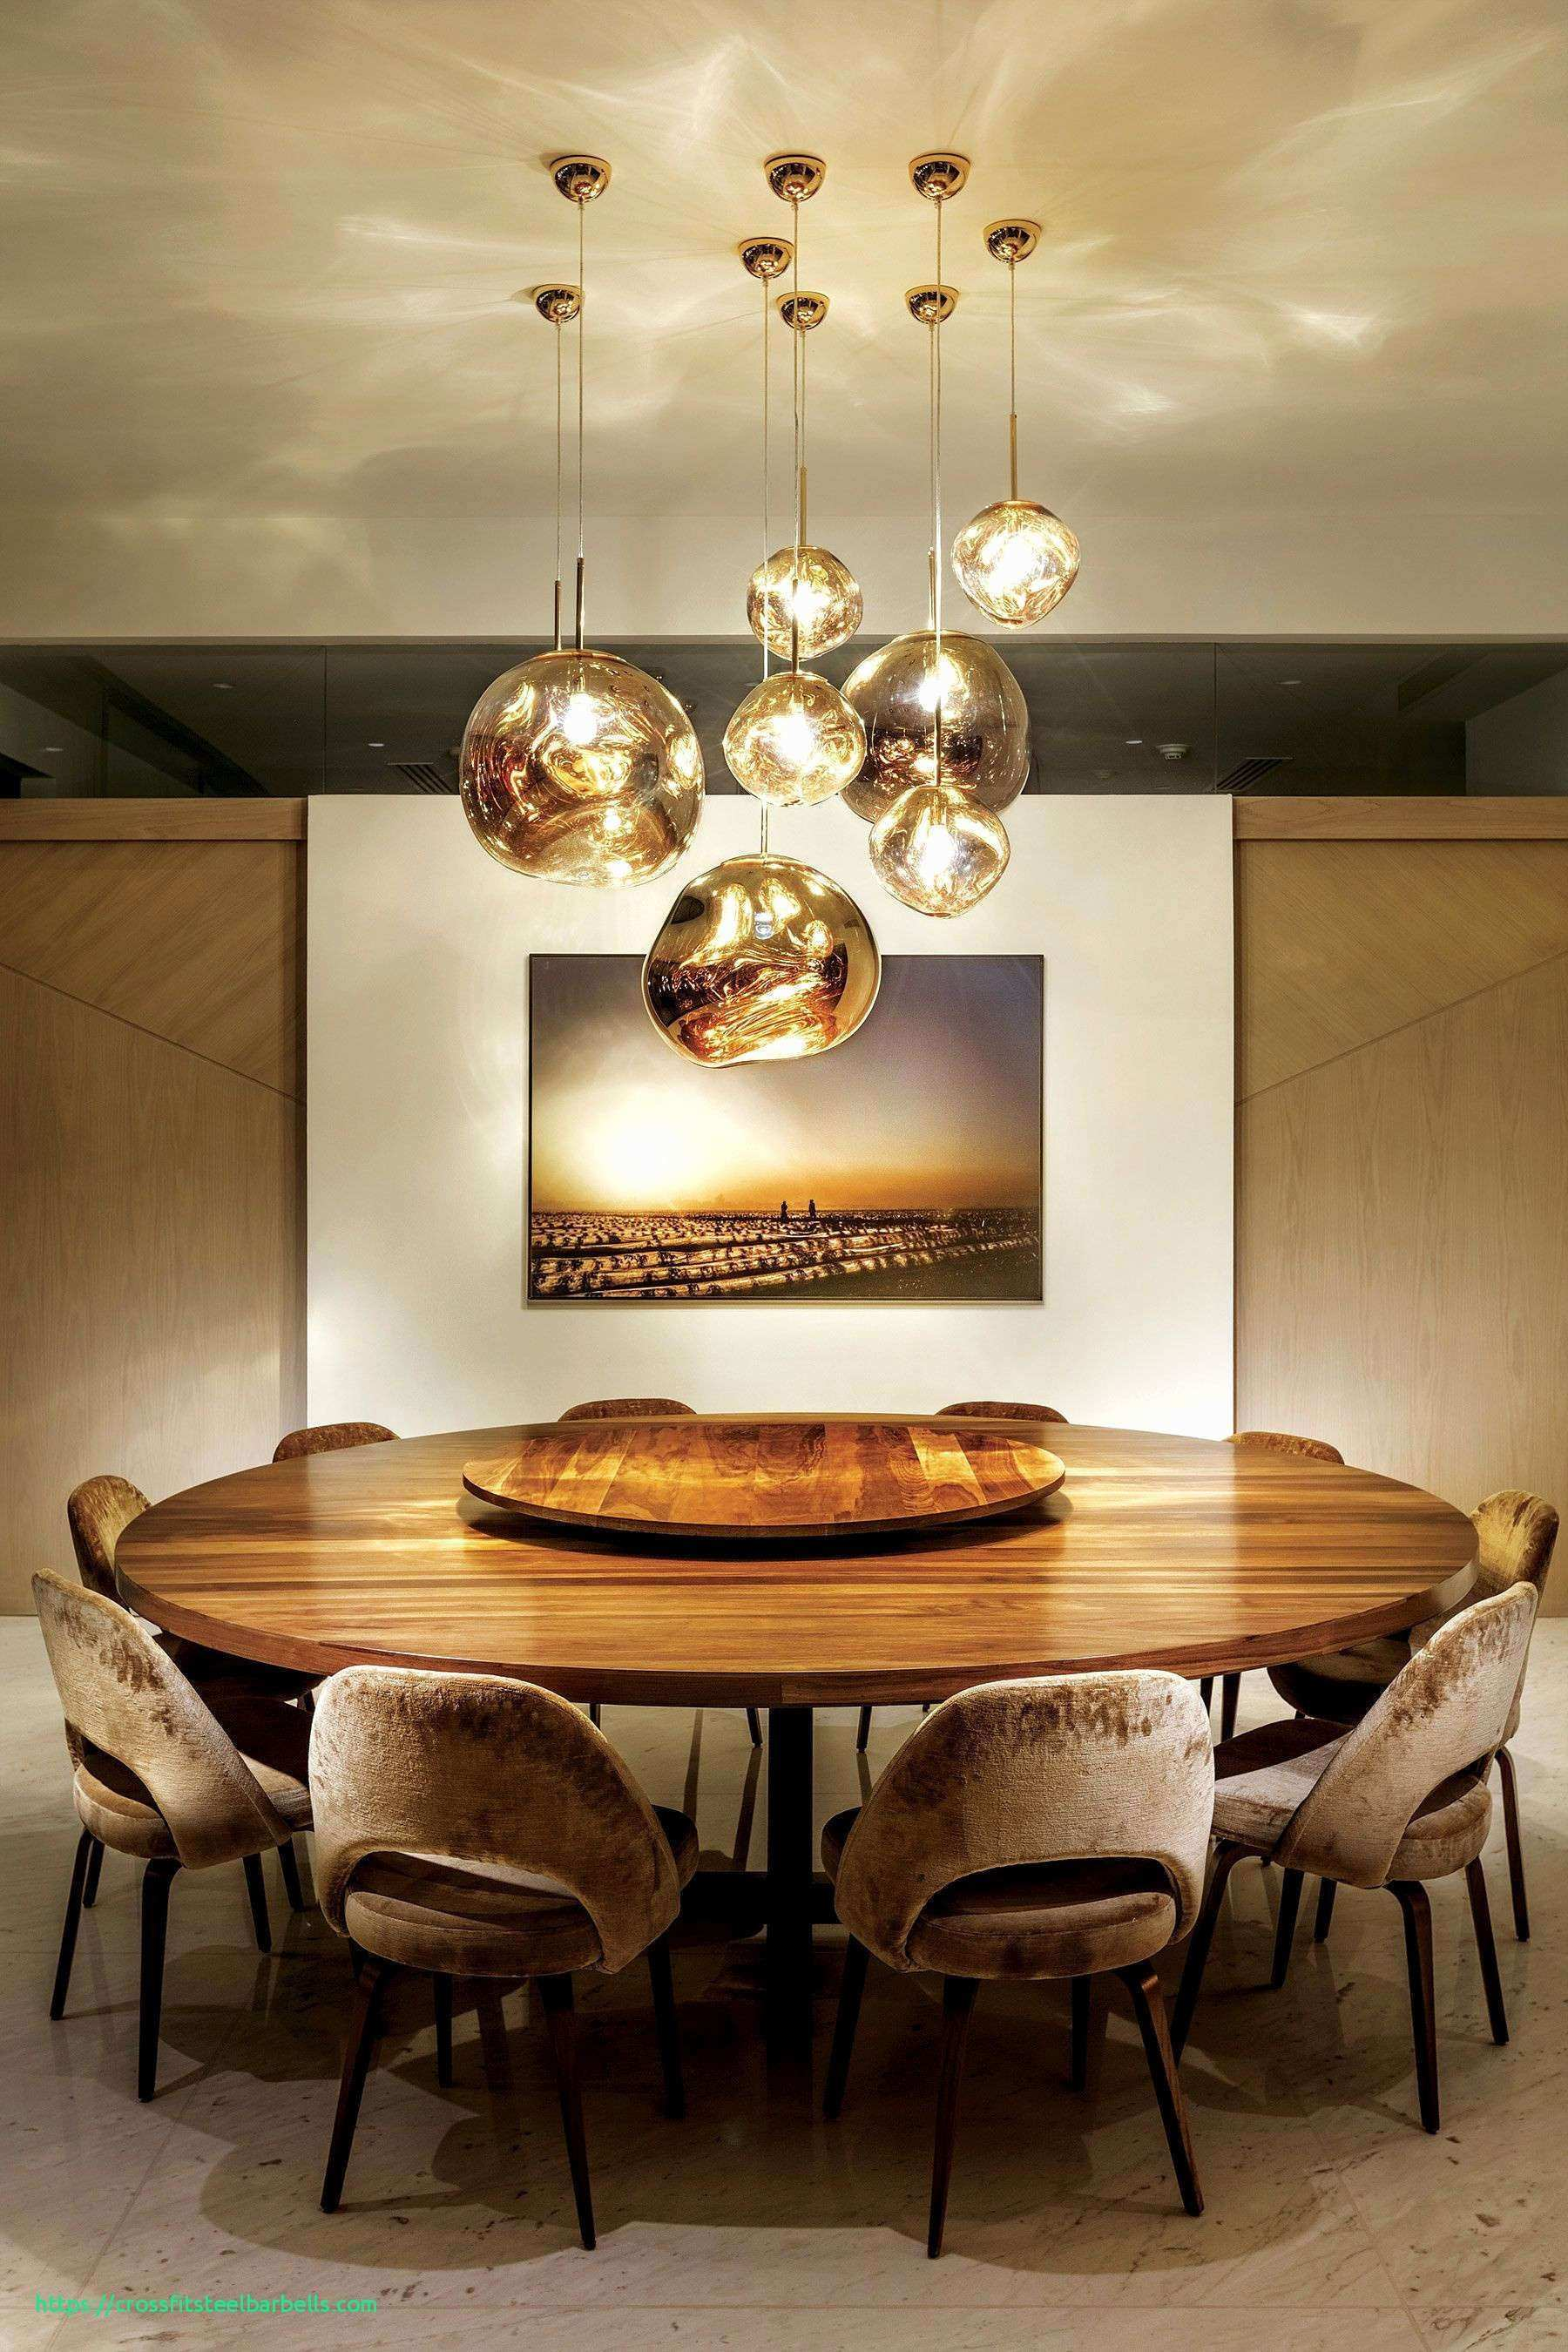 Cool Things Made Out Of Wood New Modern Showroom Interior Design Ideas Awesome Design Lighting